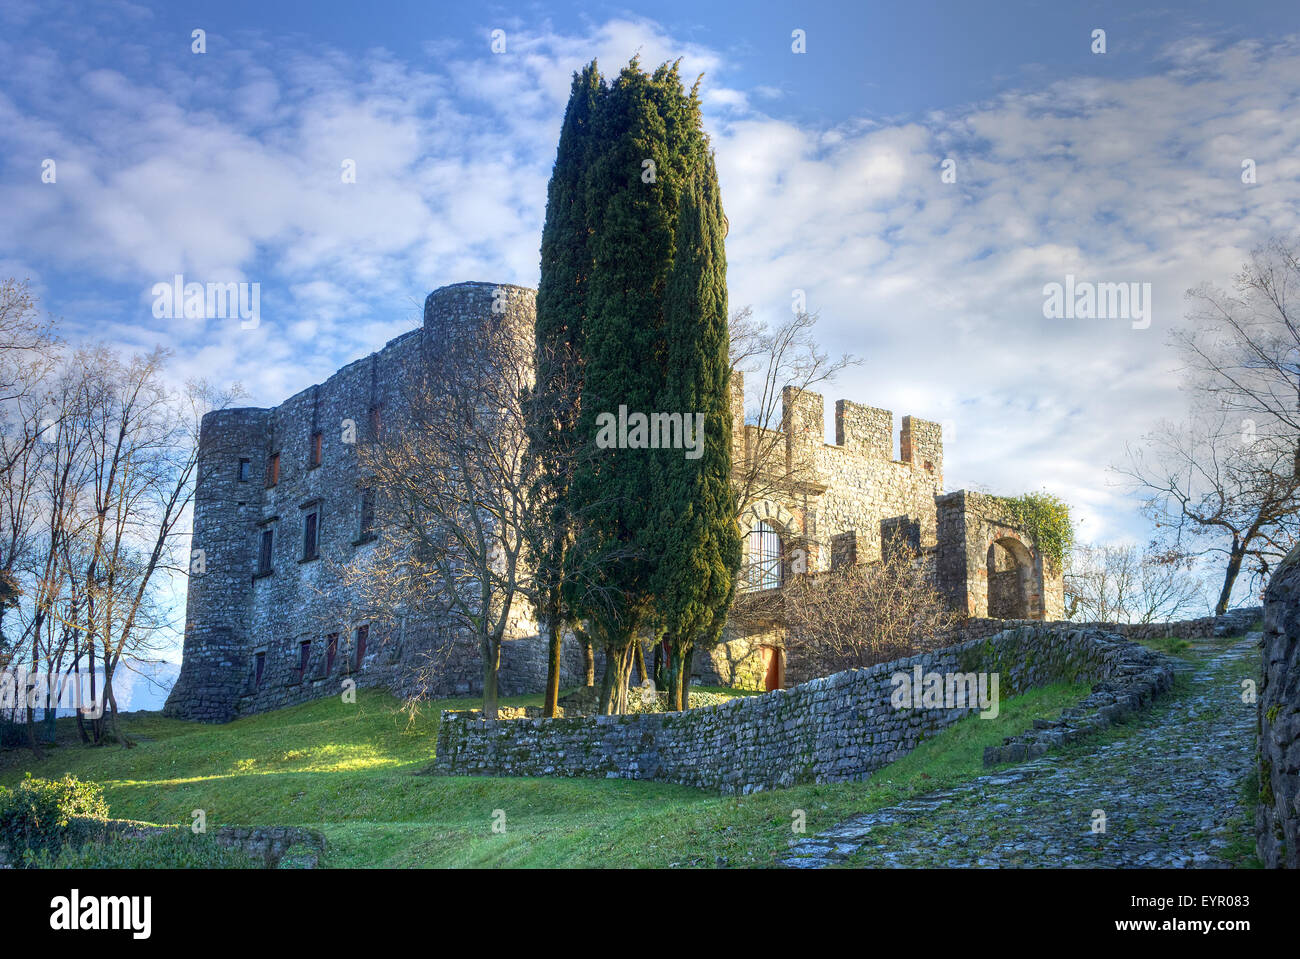 Italy, Lombardy, Iseo lake, Monte Isola, Rocca Martinengo Stock Photo